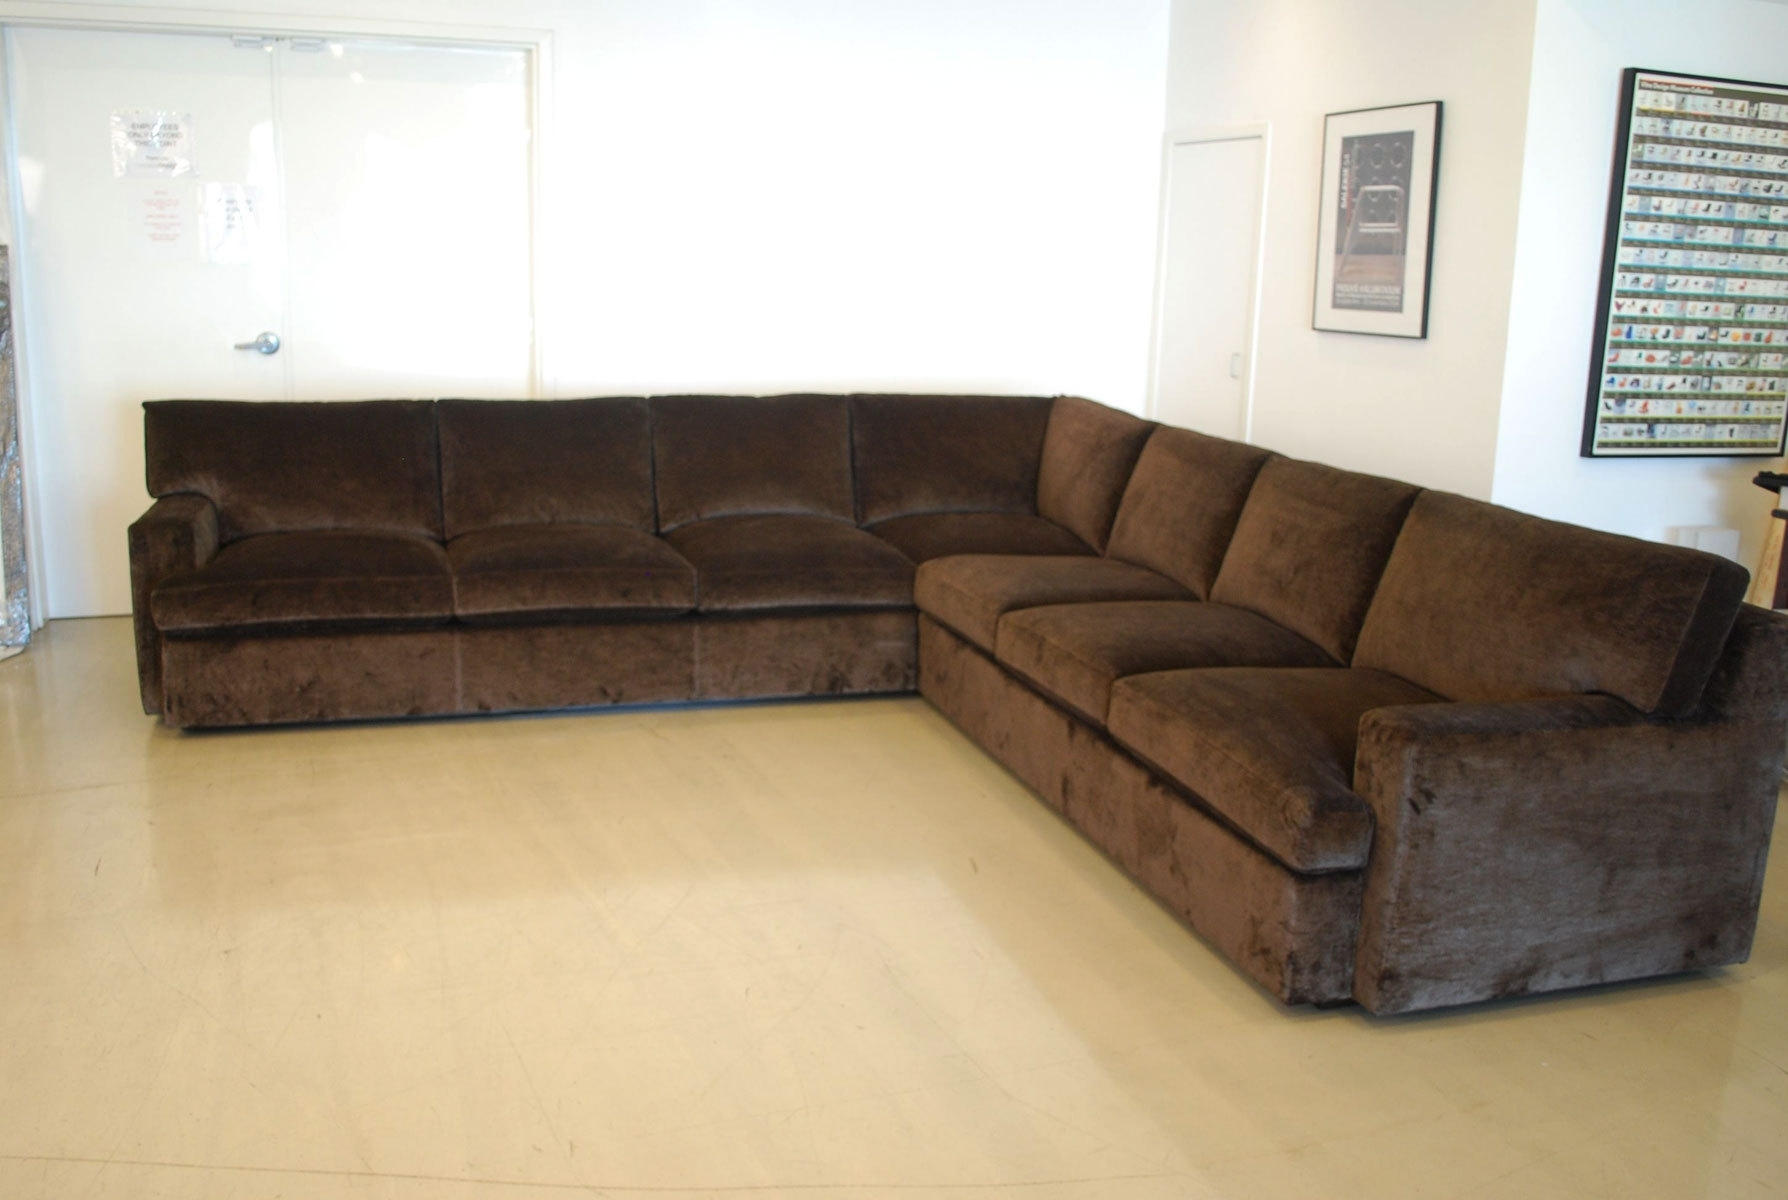 Amusing Large L Shaped Sectional Sofas 99 On The Brick Sofa Bed Throughout Sectional Sofas At Brick (View 1 of 15)